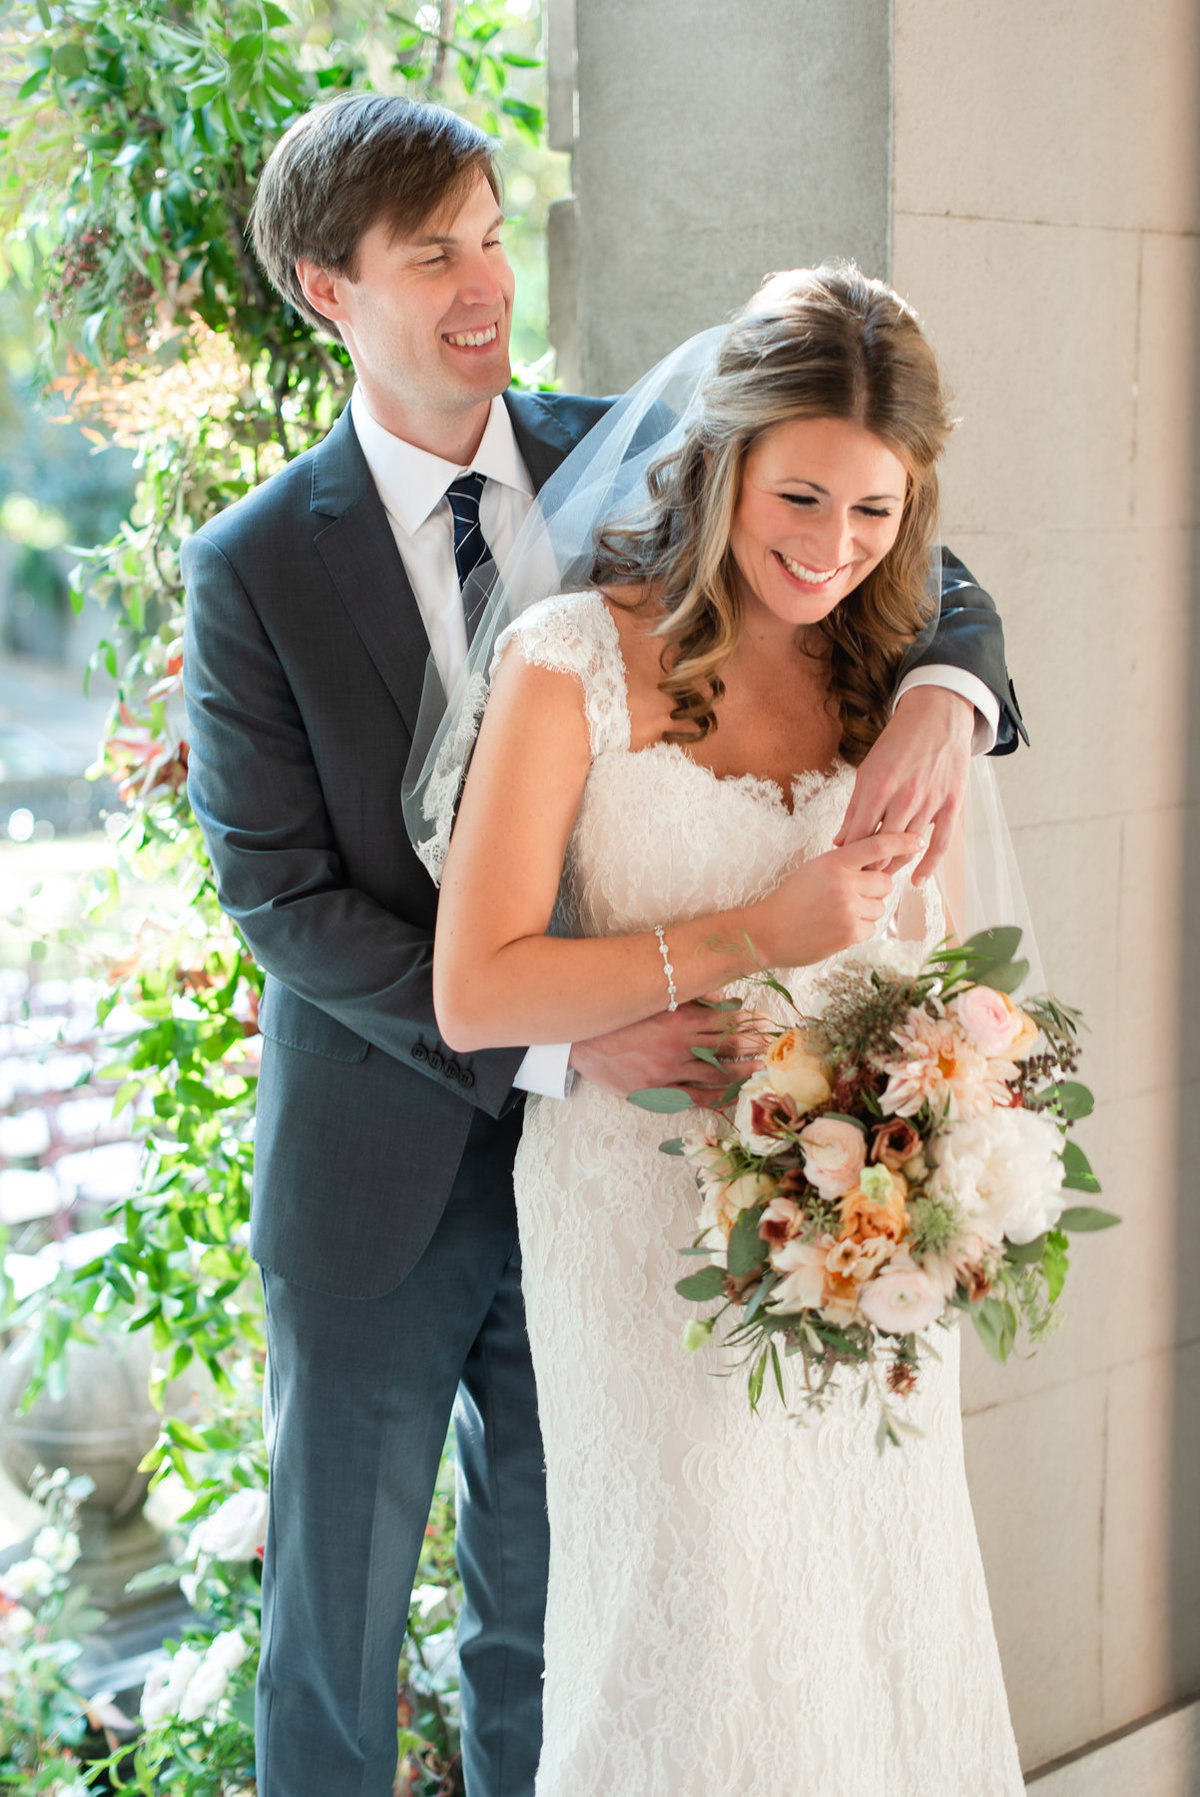 woodruff fontaine wedding photo8423